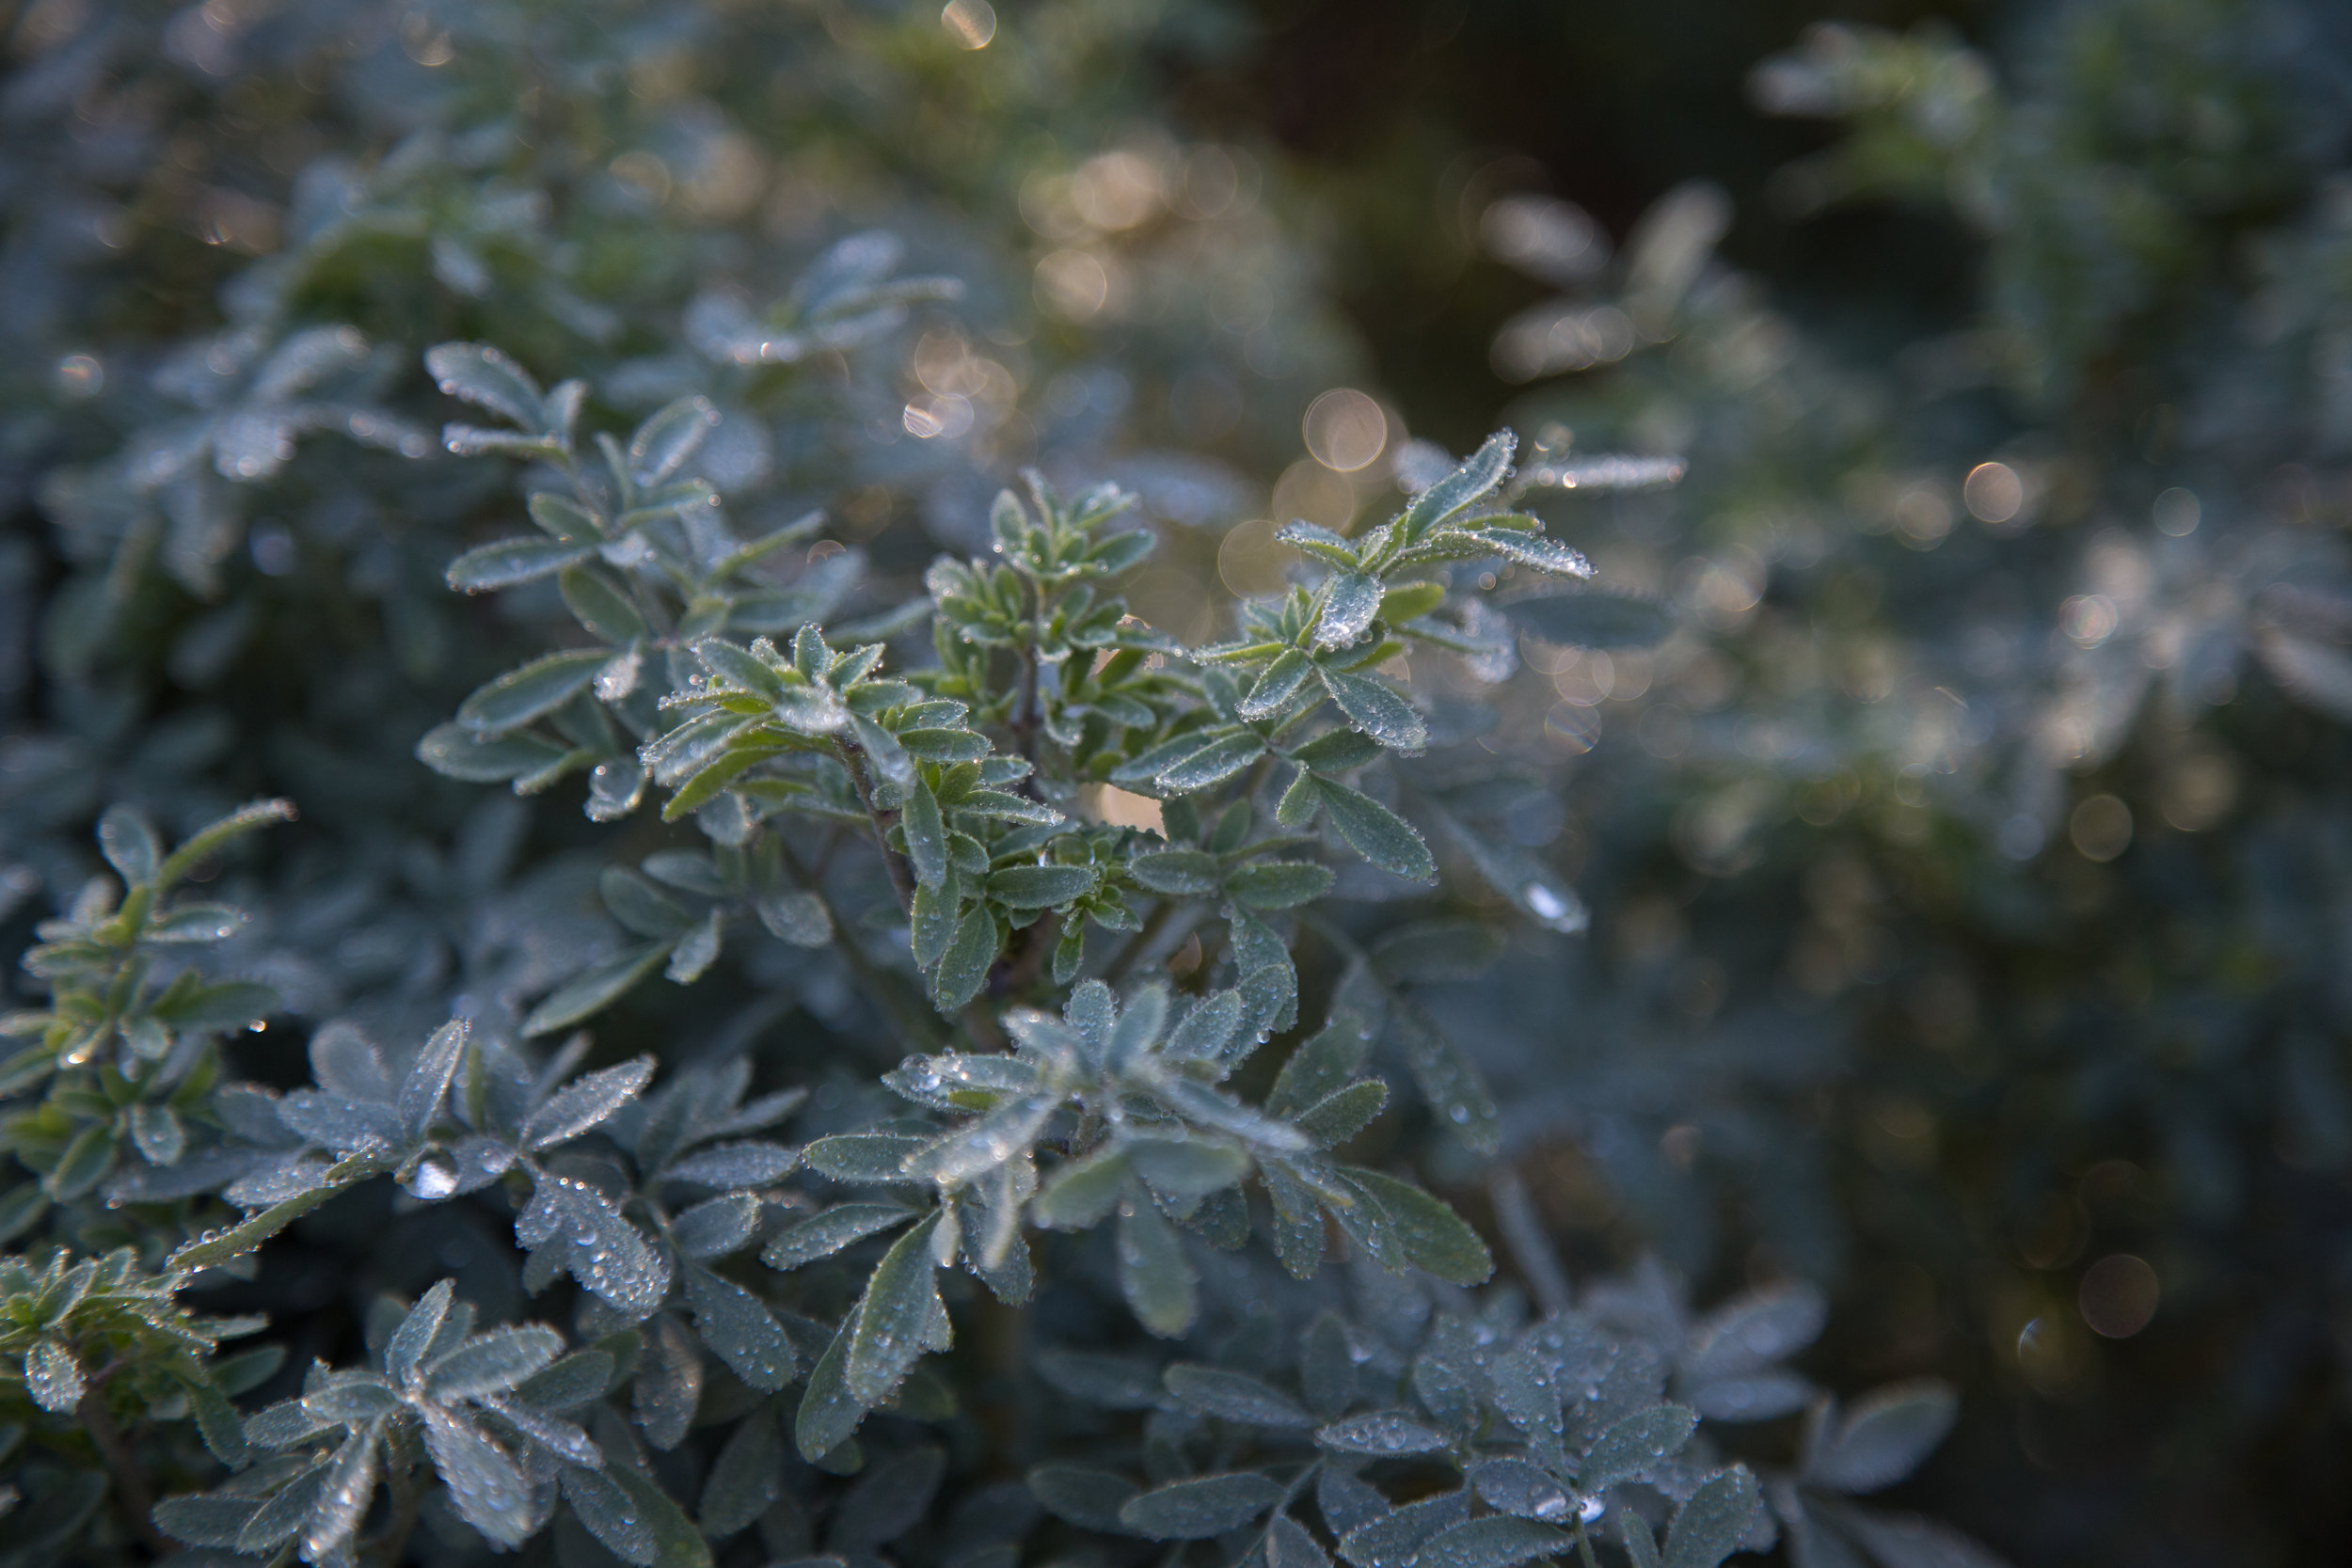 Rue sprinkled with water droplets glistened in the morning light in the herb garden.